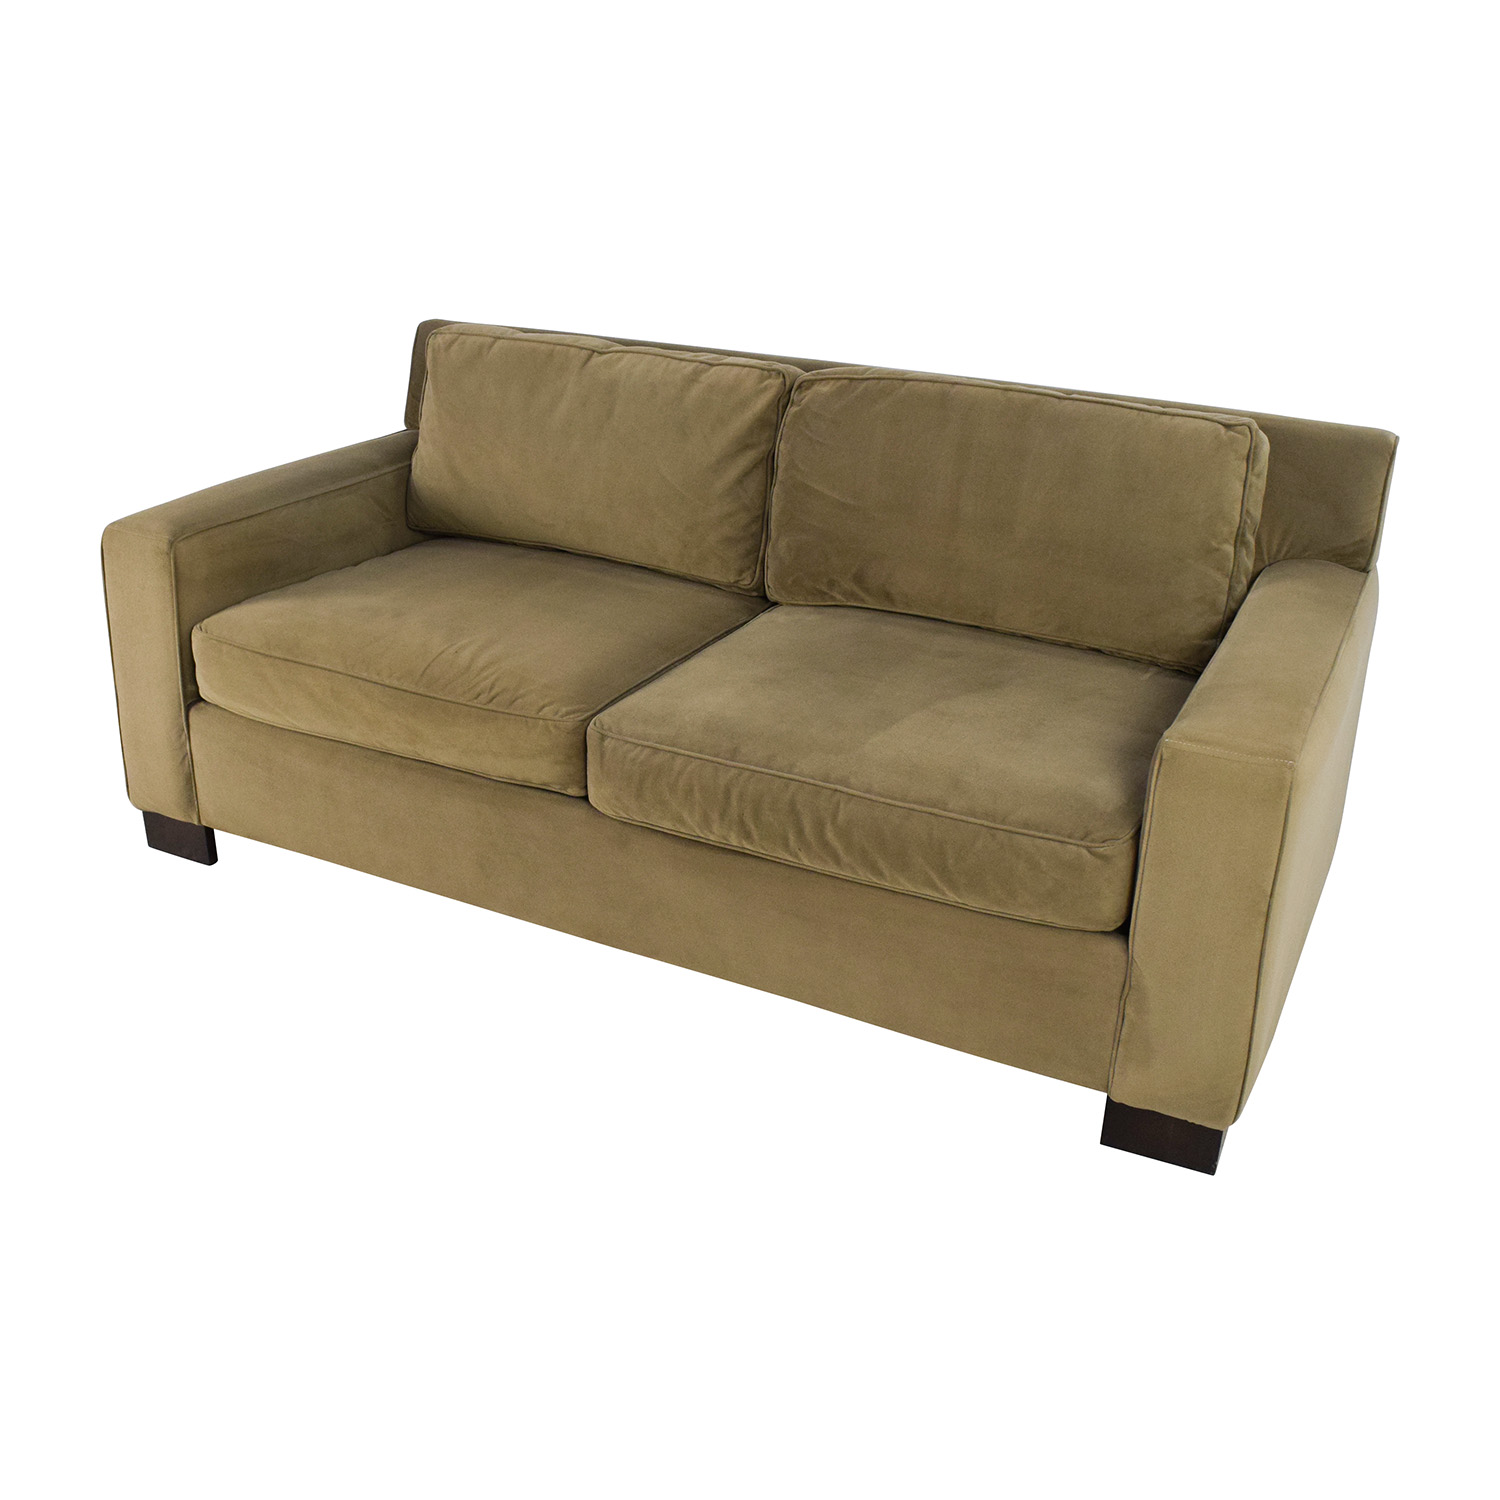 50 off west elm west elm classic henry beige cushion for Best west elm sofa